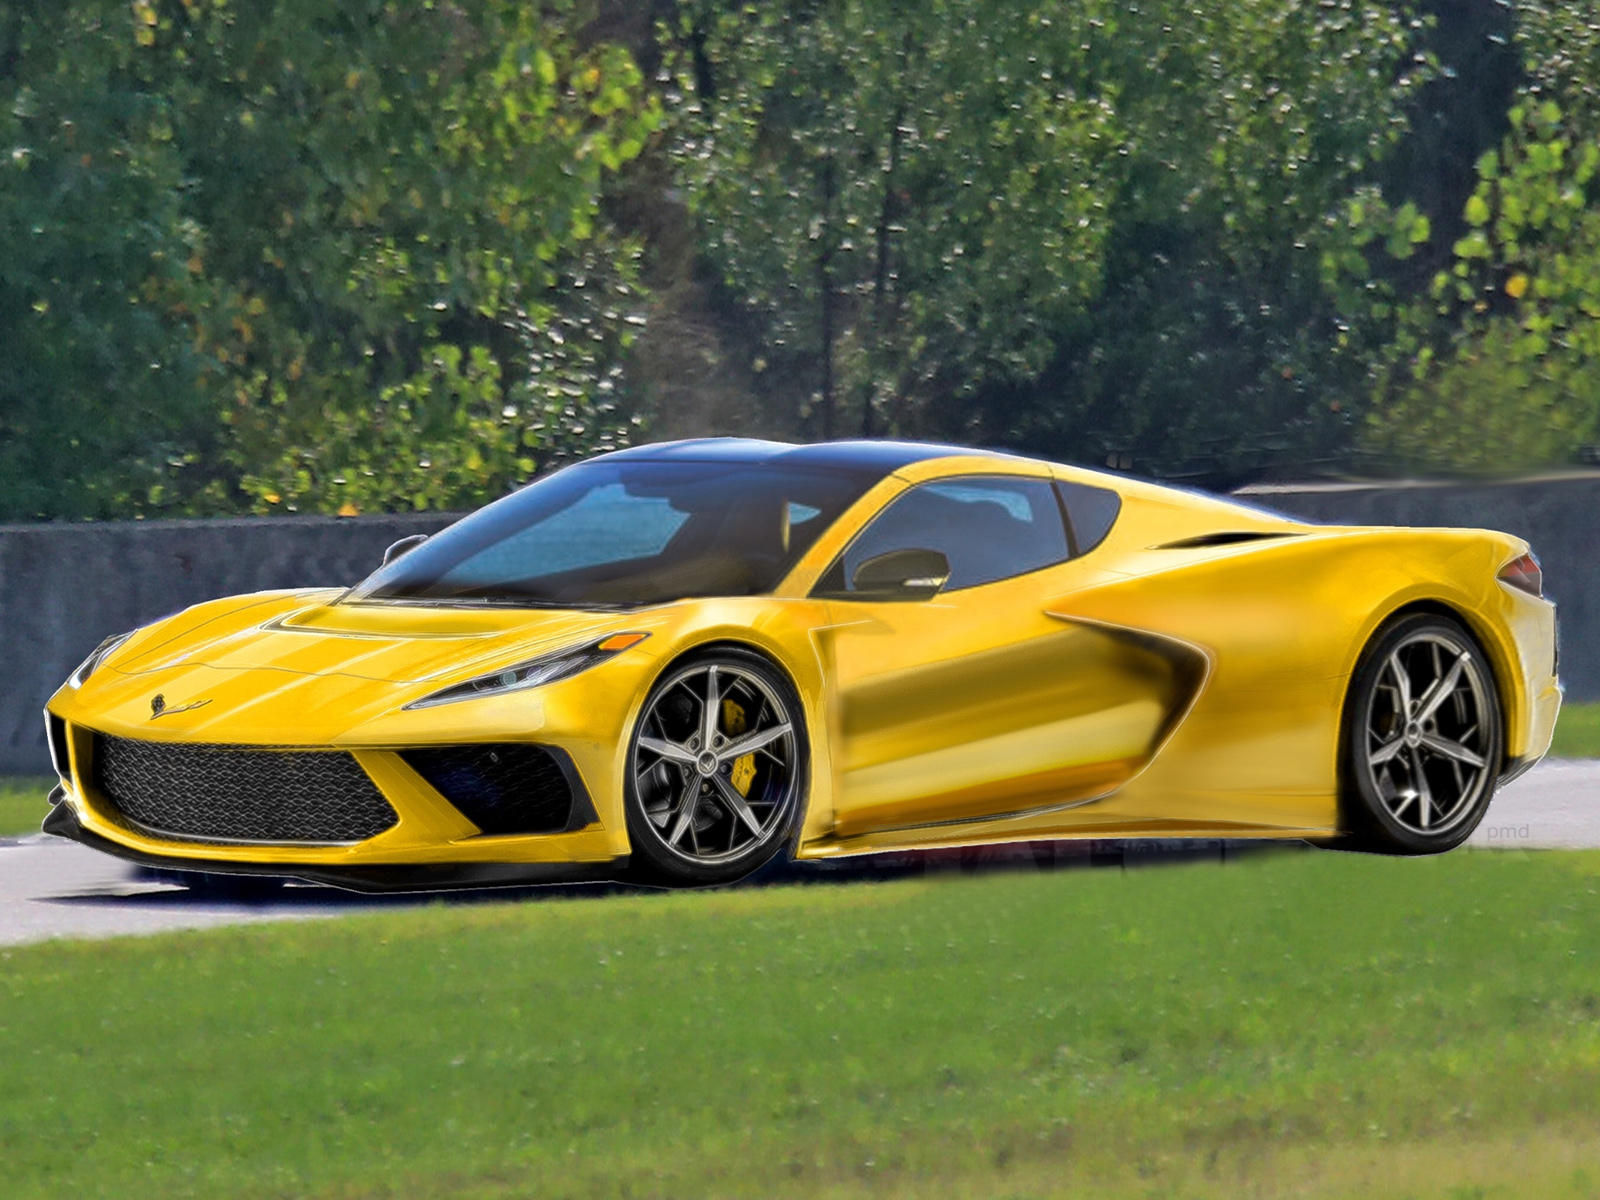 C8 Corvette Won't Cost Much More Than The C7 | CarBuzz